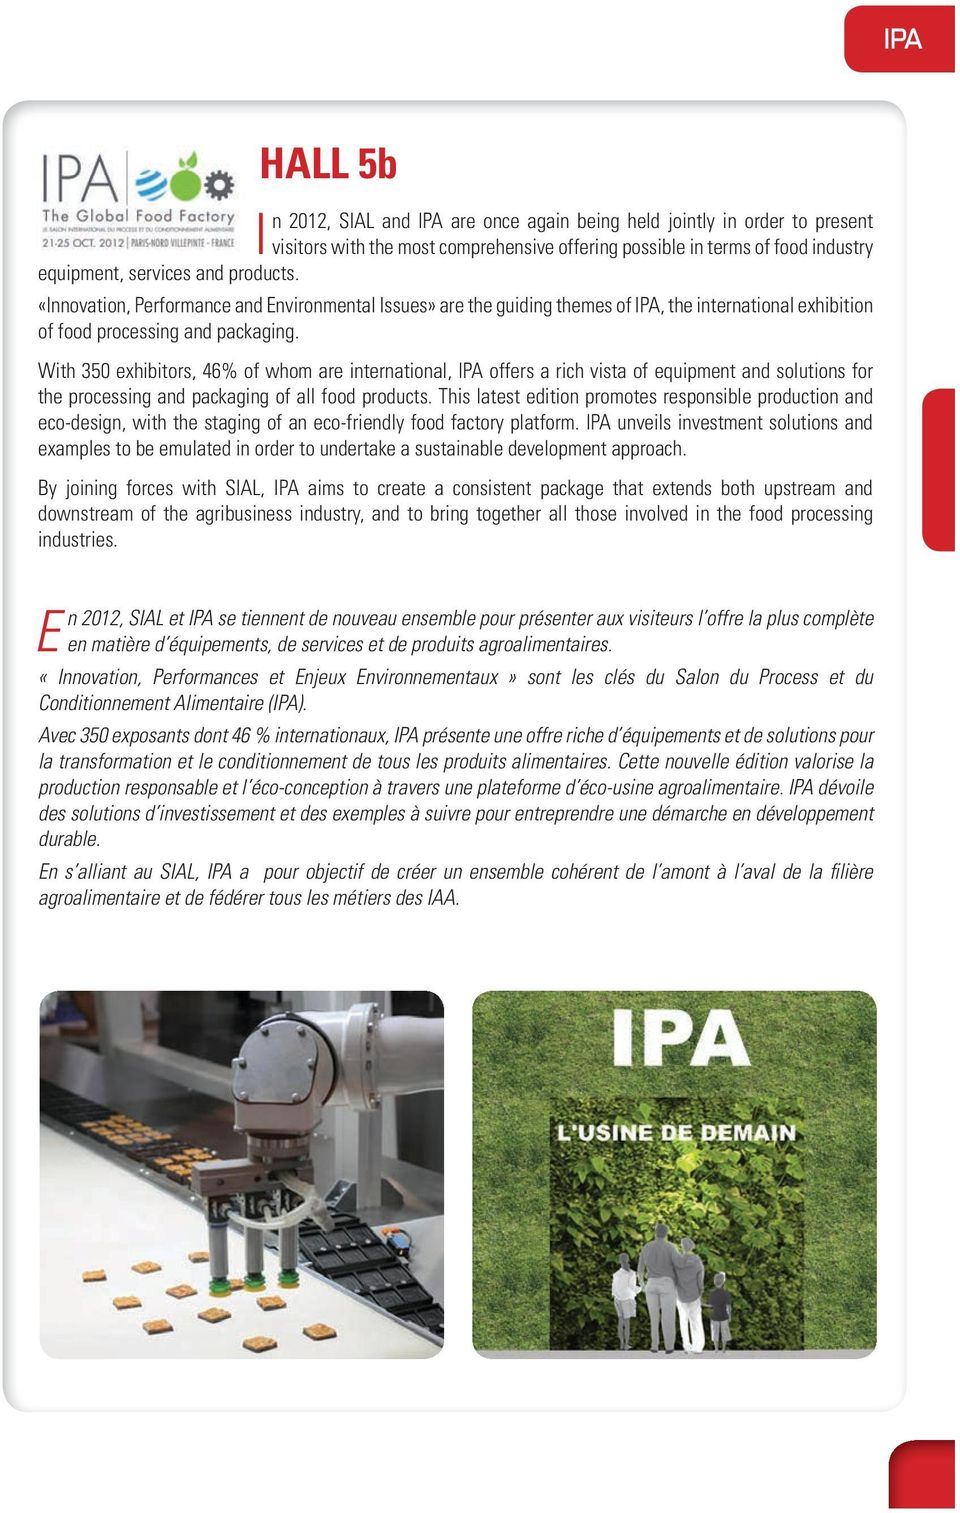 With 350 exhibitors, 46% of whom are international, IPA offers a rich vista of equipment and solutions for the processing and packaging of all food products.